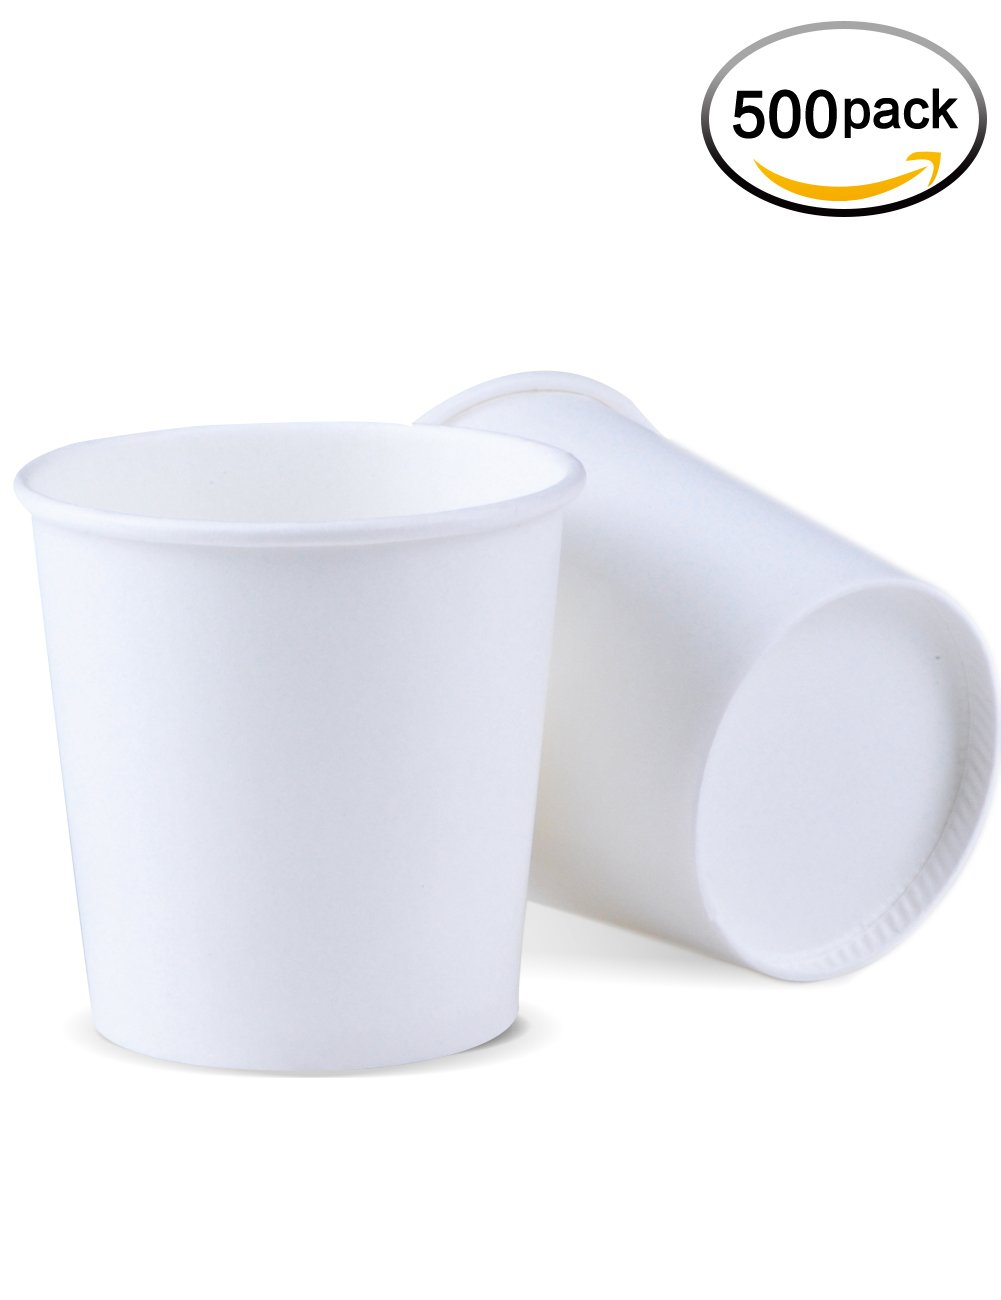 Disposable Bathroom Cups Find